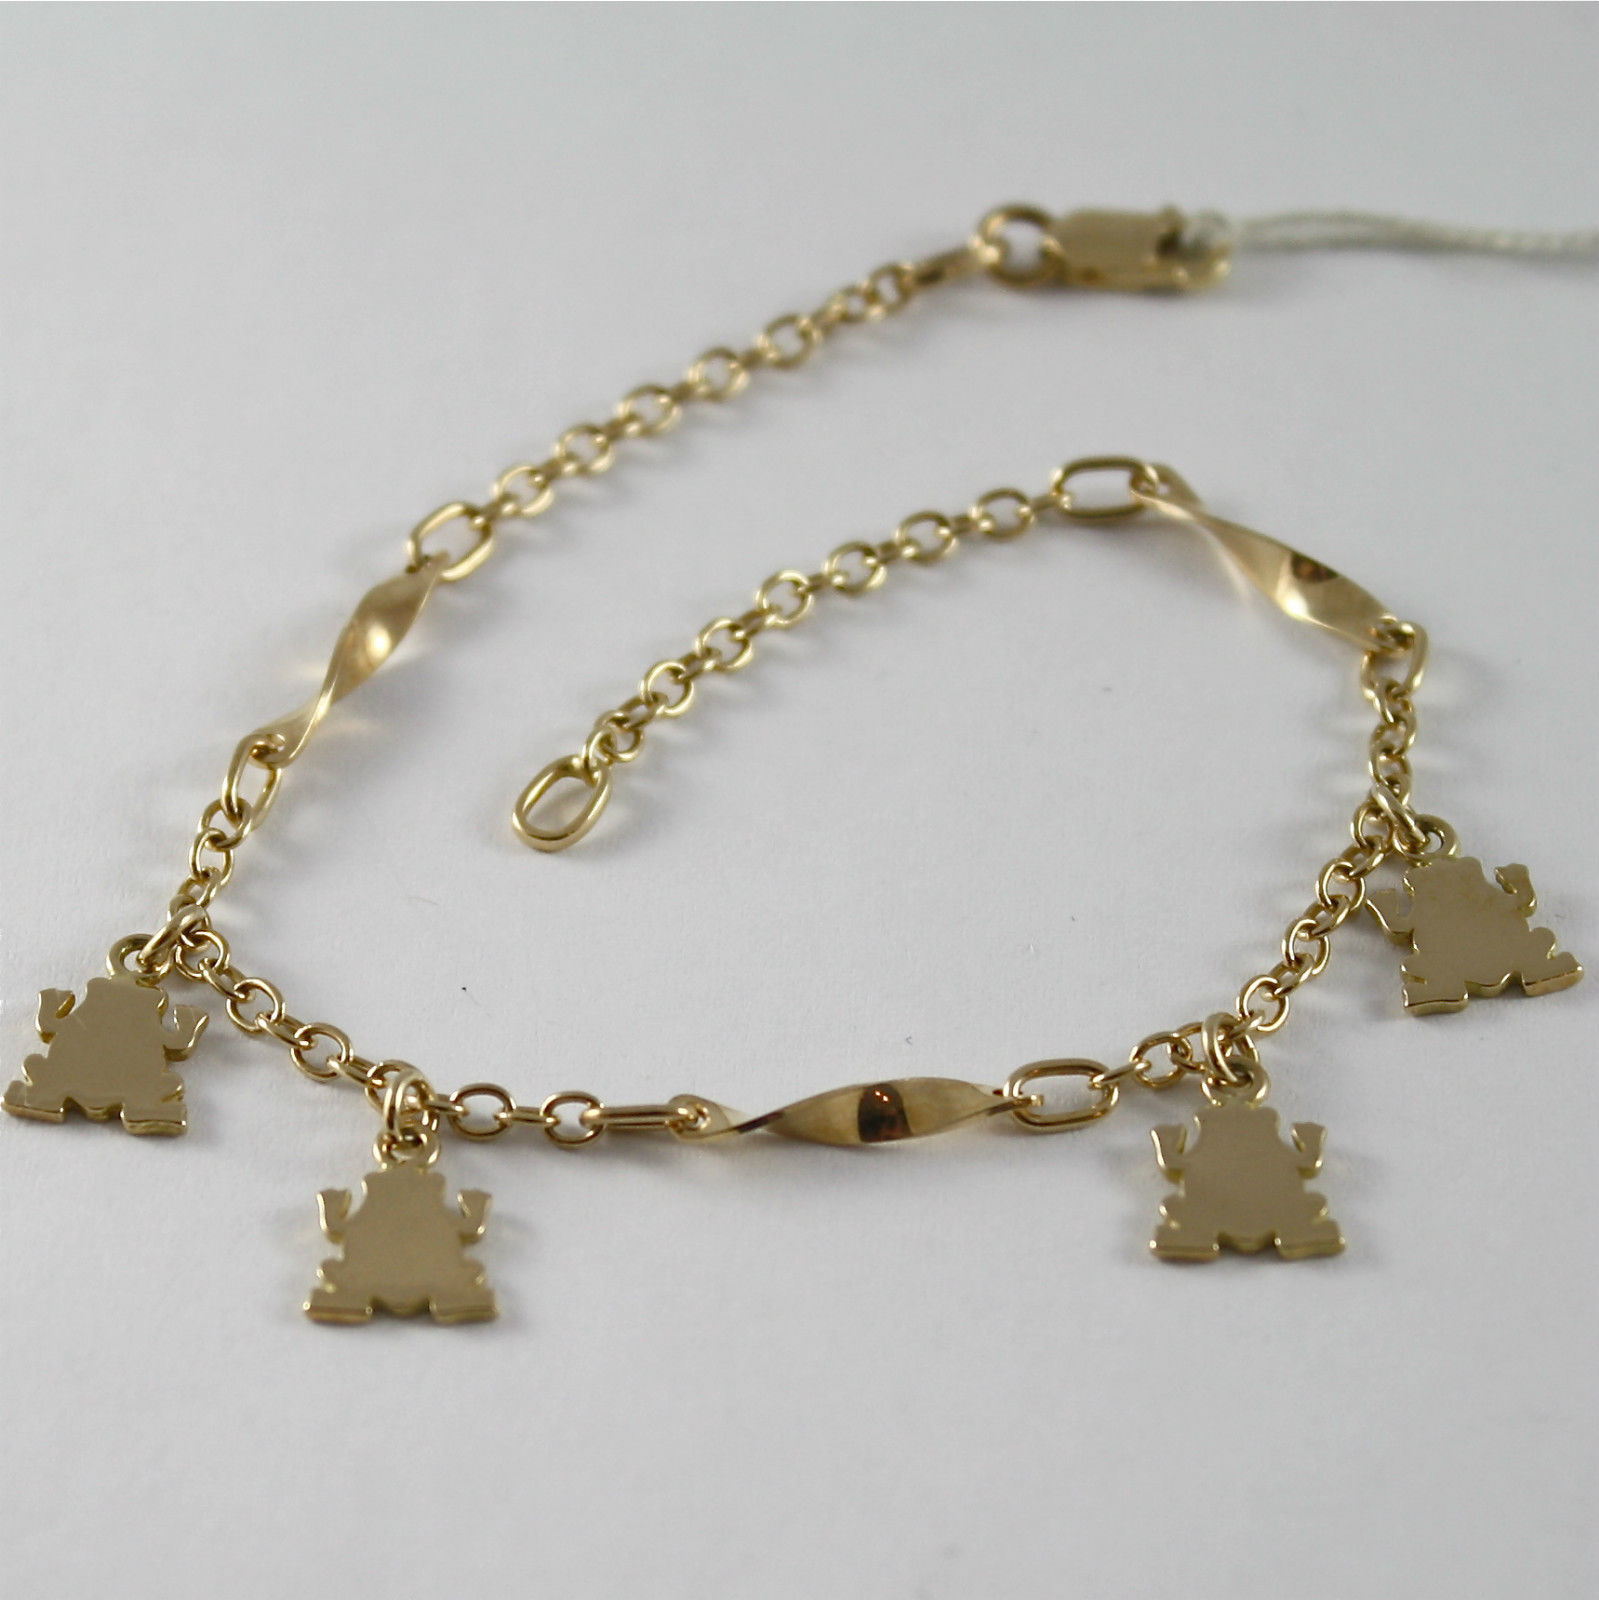 SOLID 18K YELLOW GOLD BRACELET WITH FROGS PENDANT, FROG, MADE IN ITALY